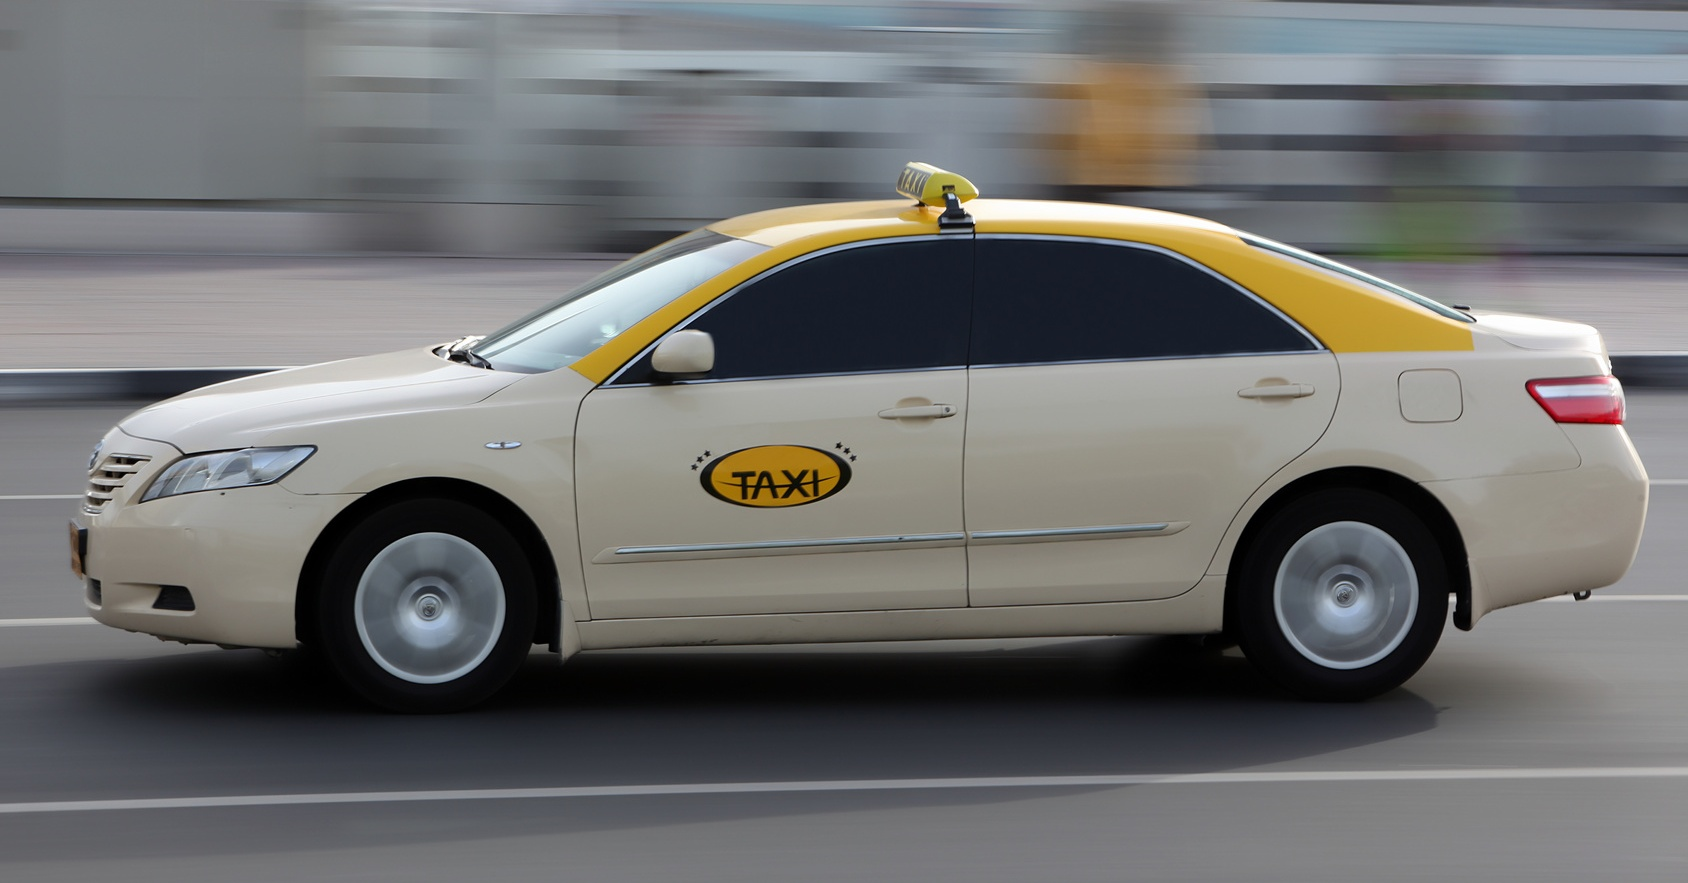 free-wifi-in-dubai-taxis-coming-soon-0-